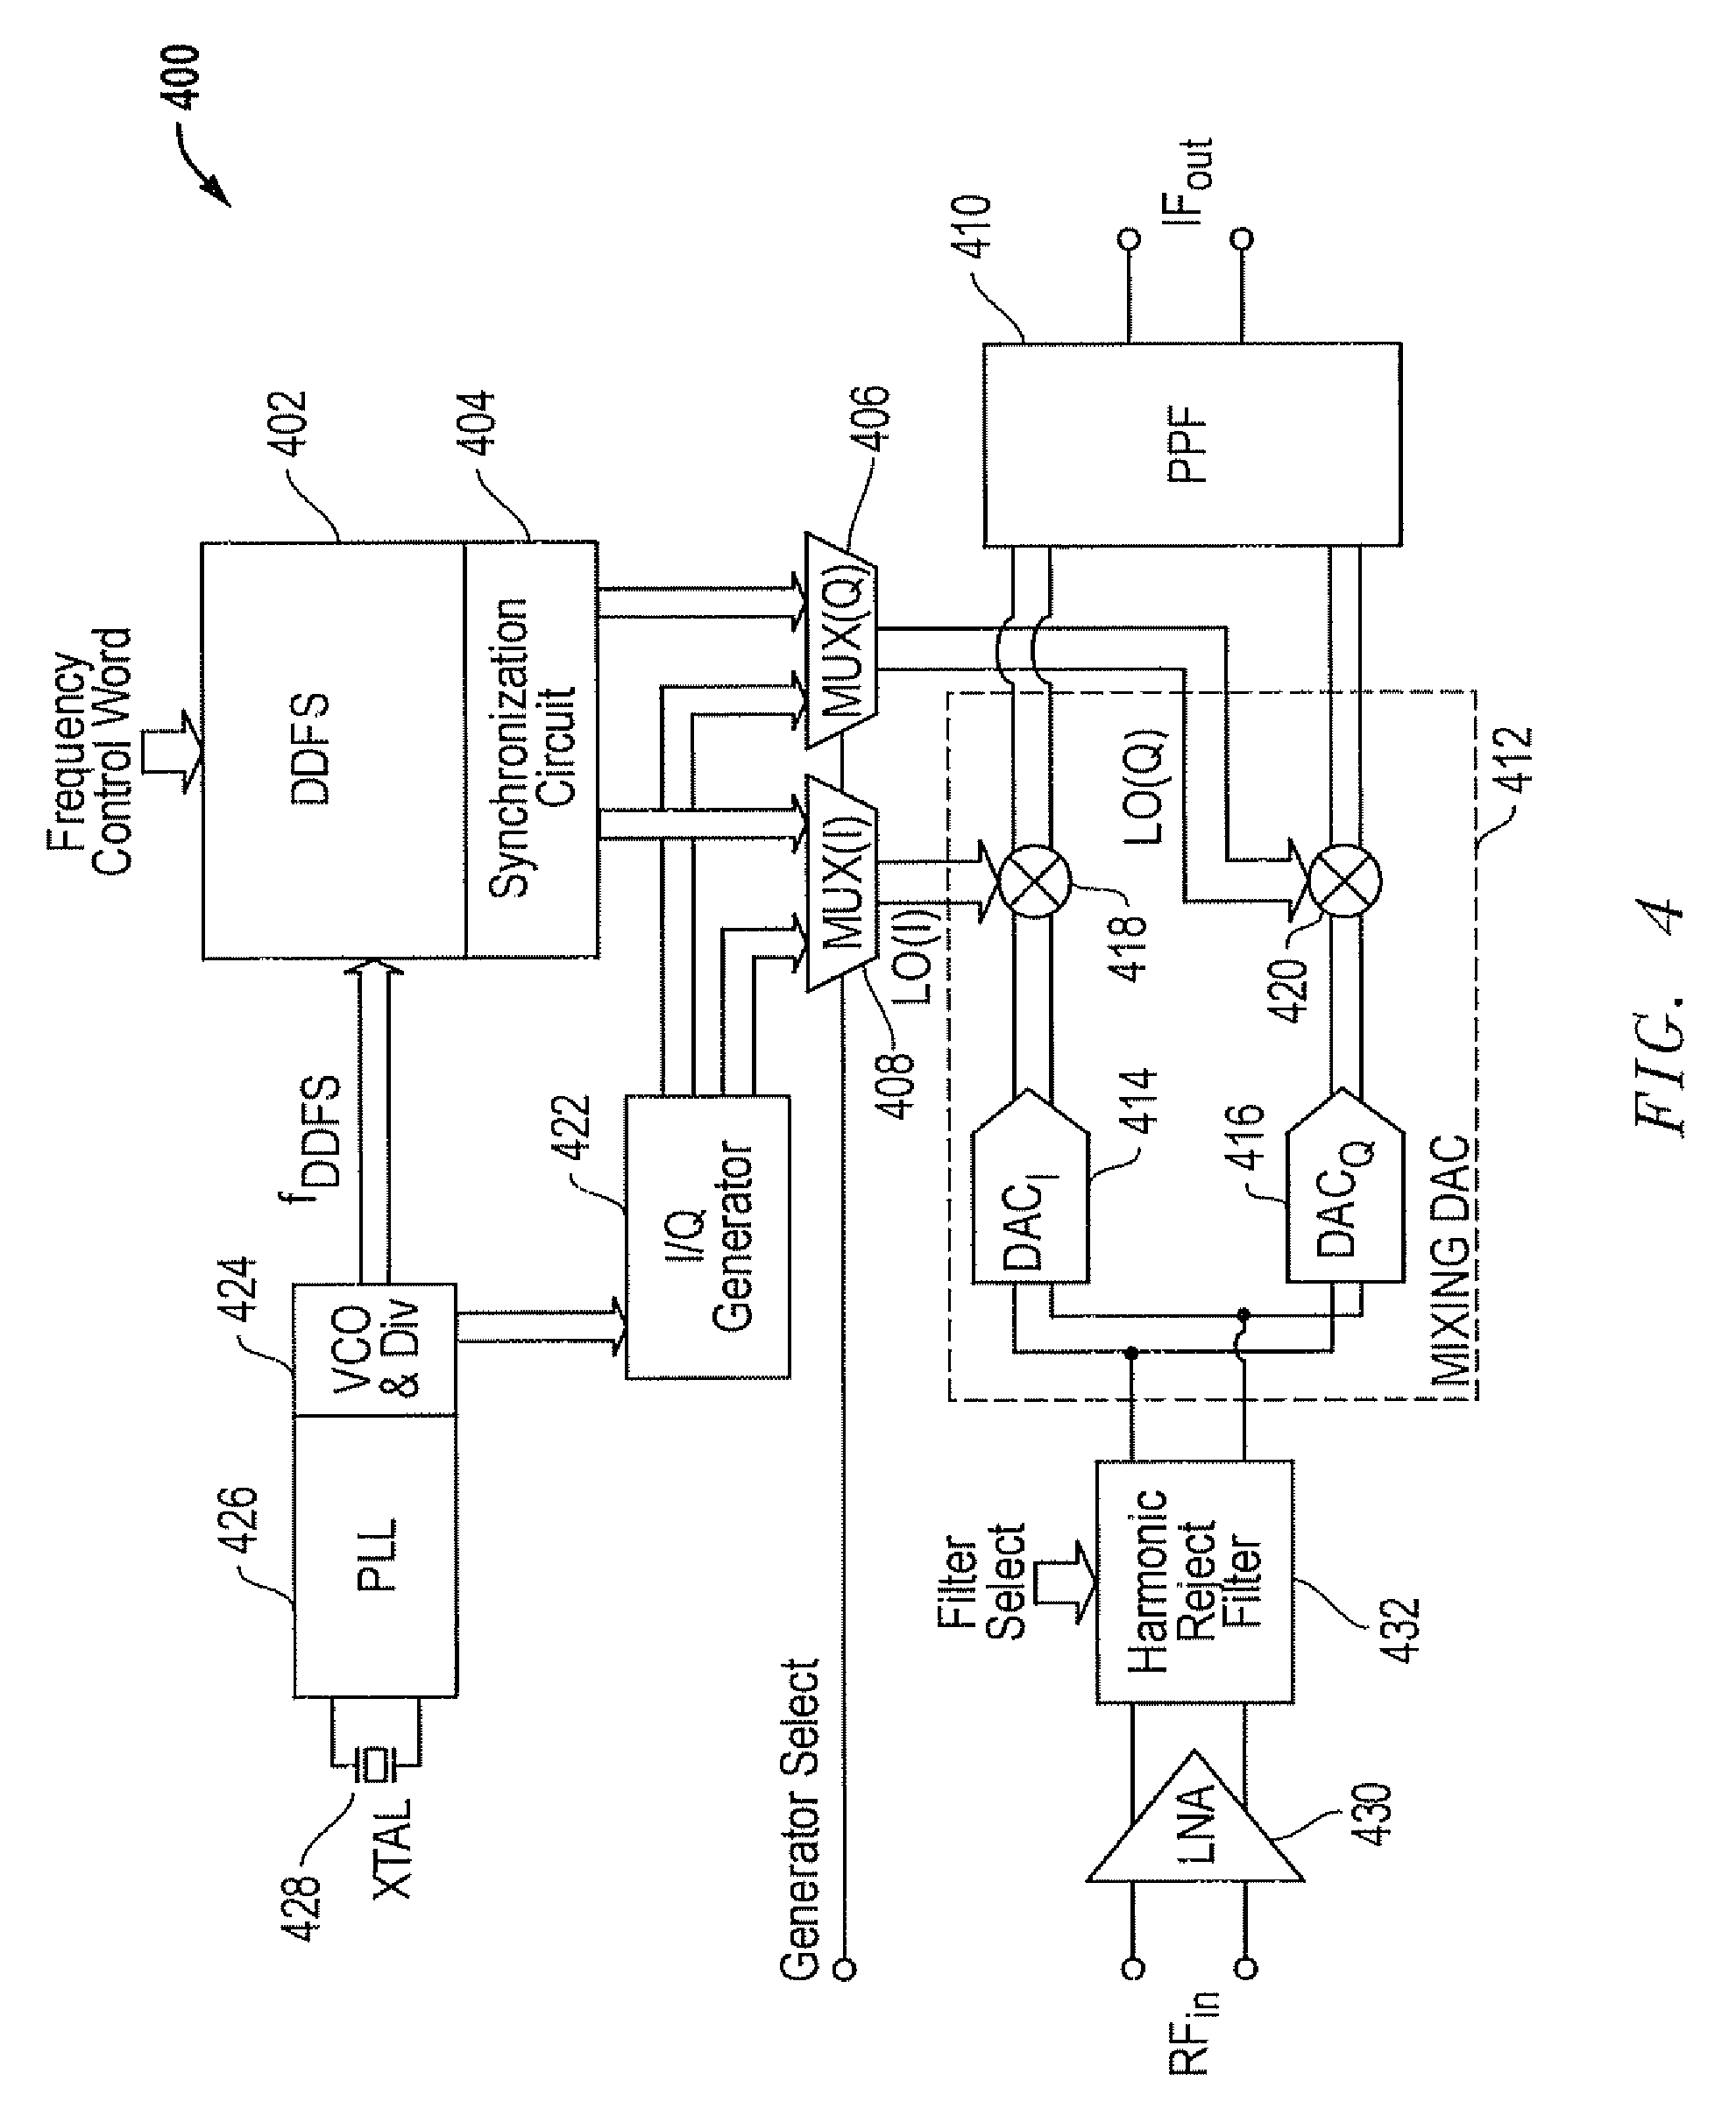 Patent Us7599676 Power Consumption Reduction Techniques For An Rf Block Diagram Of Analogue Uhf Tv Receiver Drawing